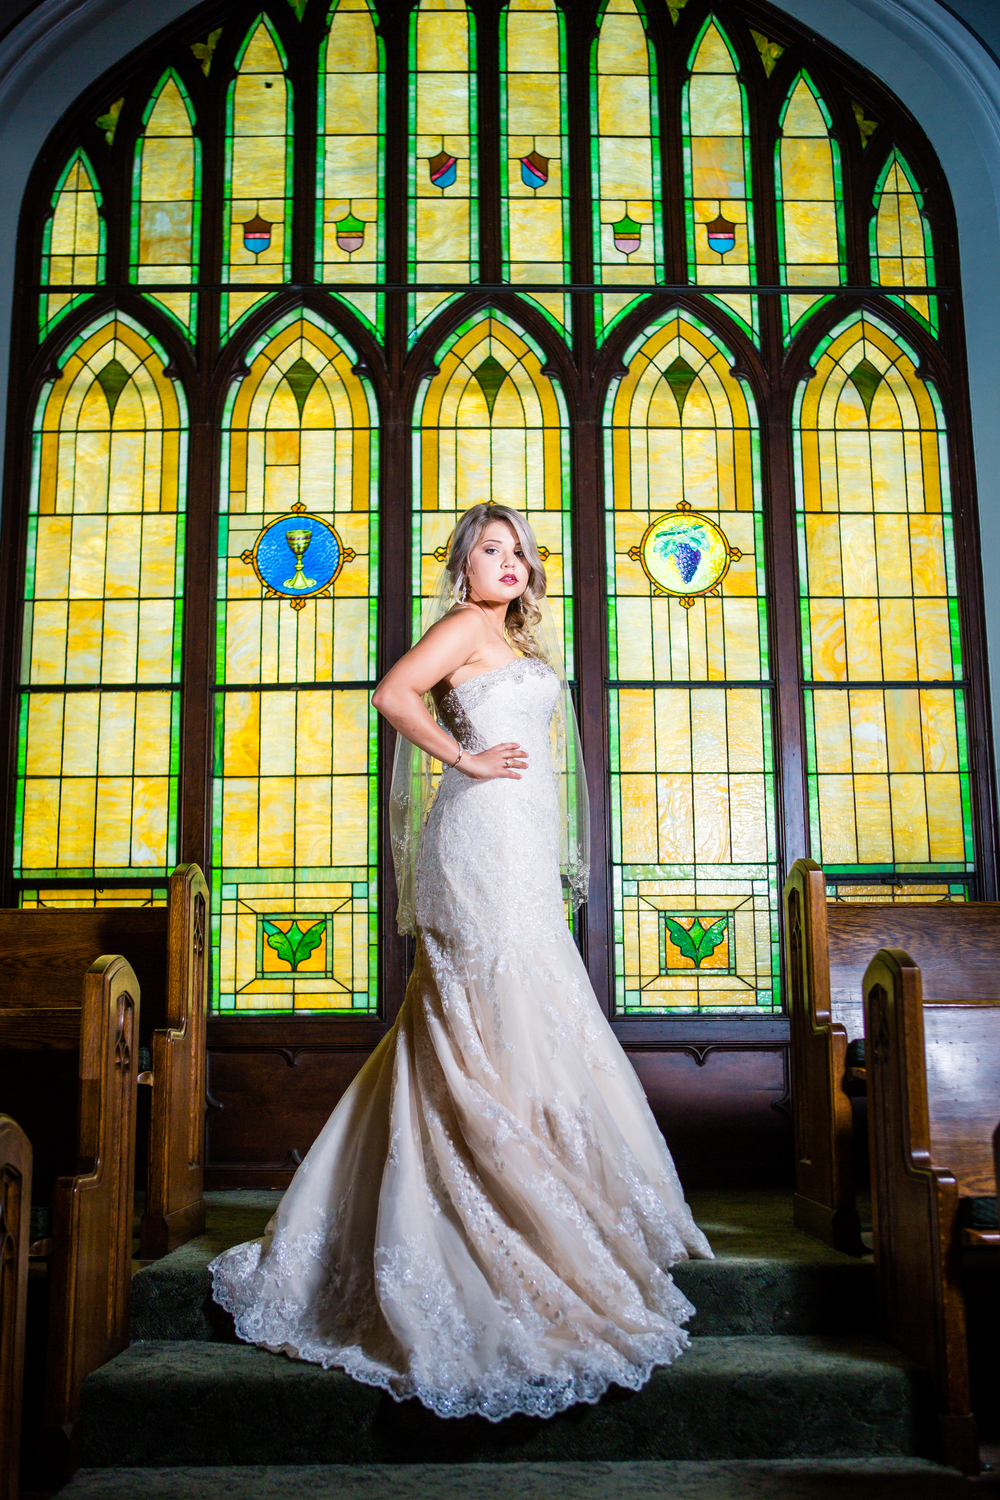 Bride in front of stain glass window. www.jmgantphotography.com